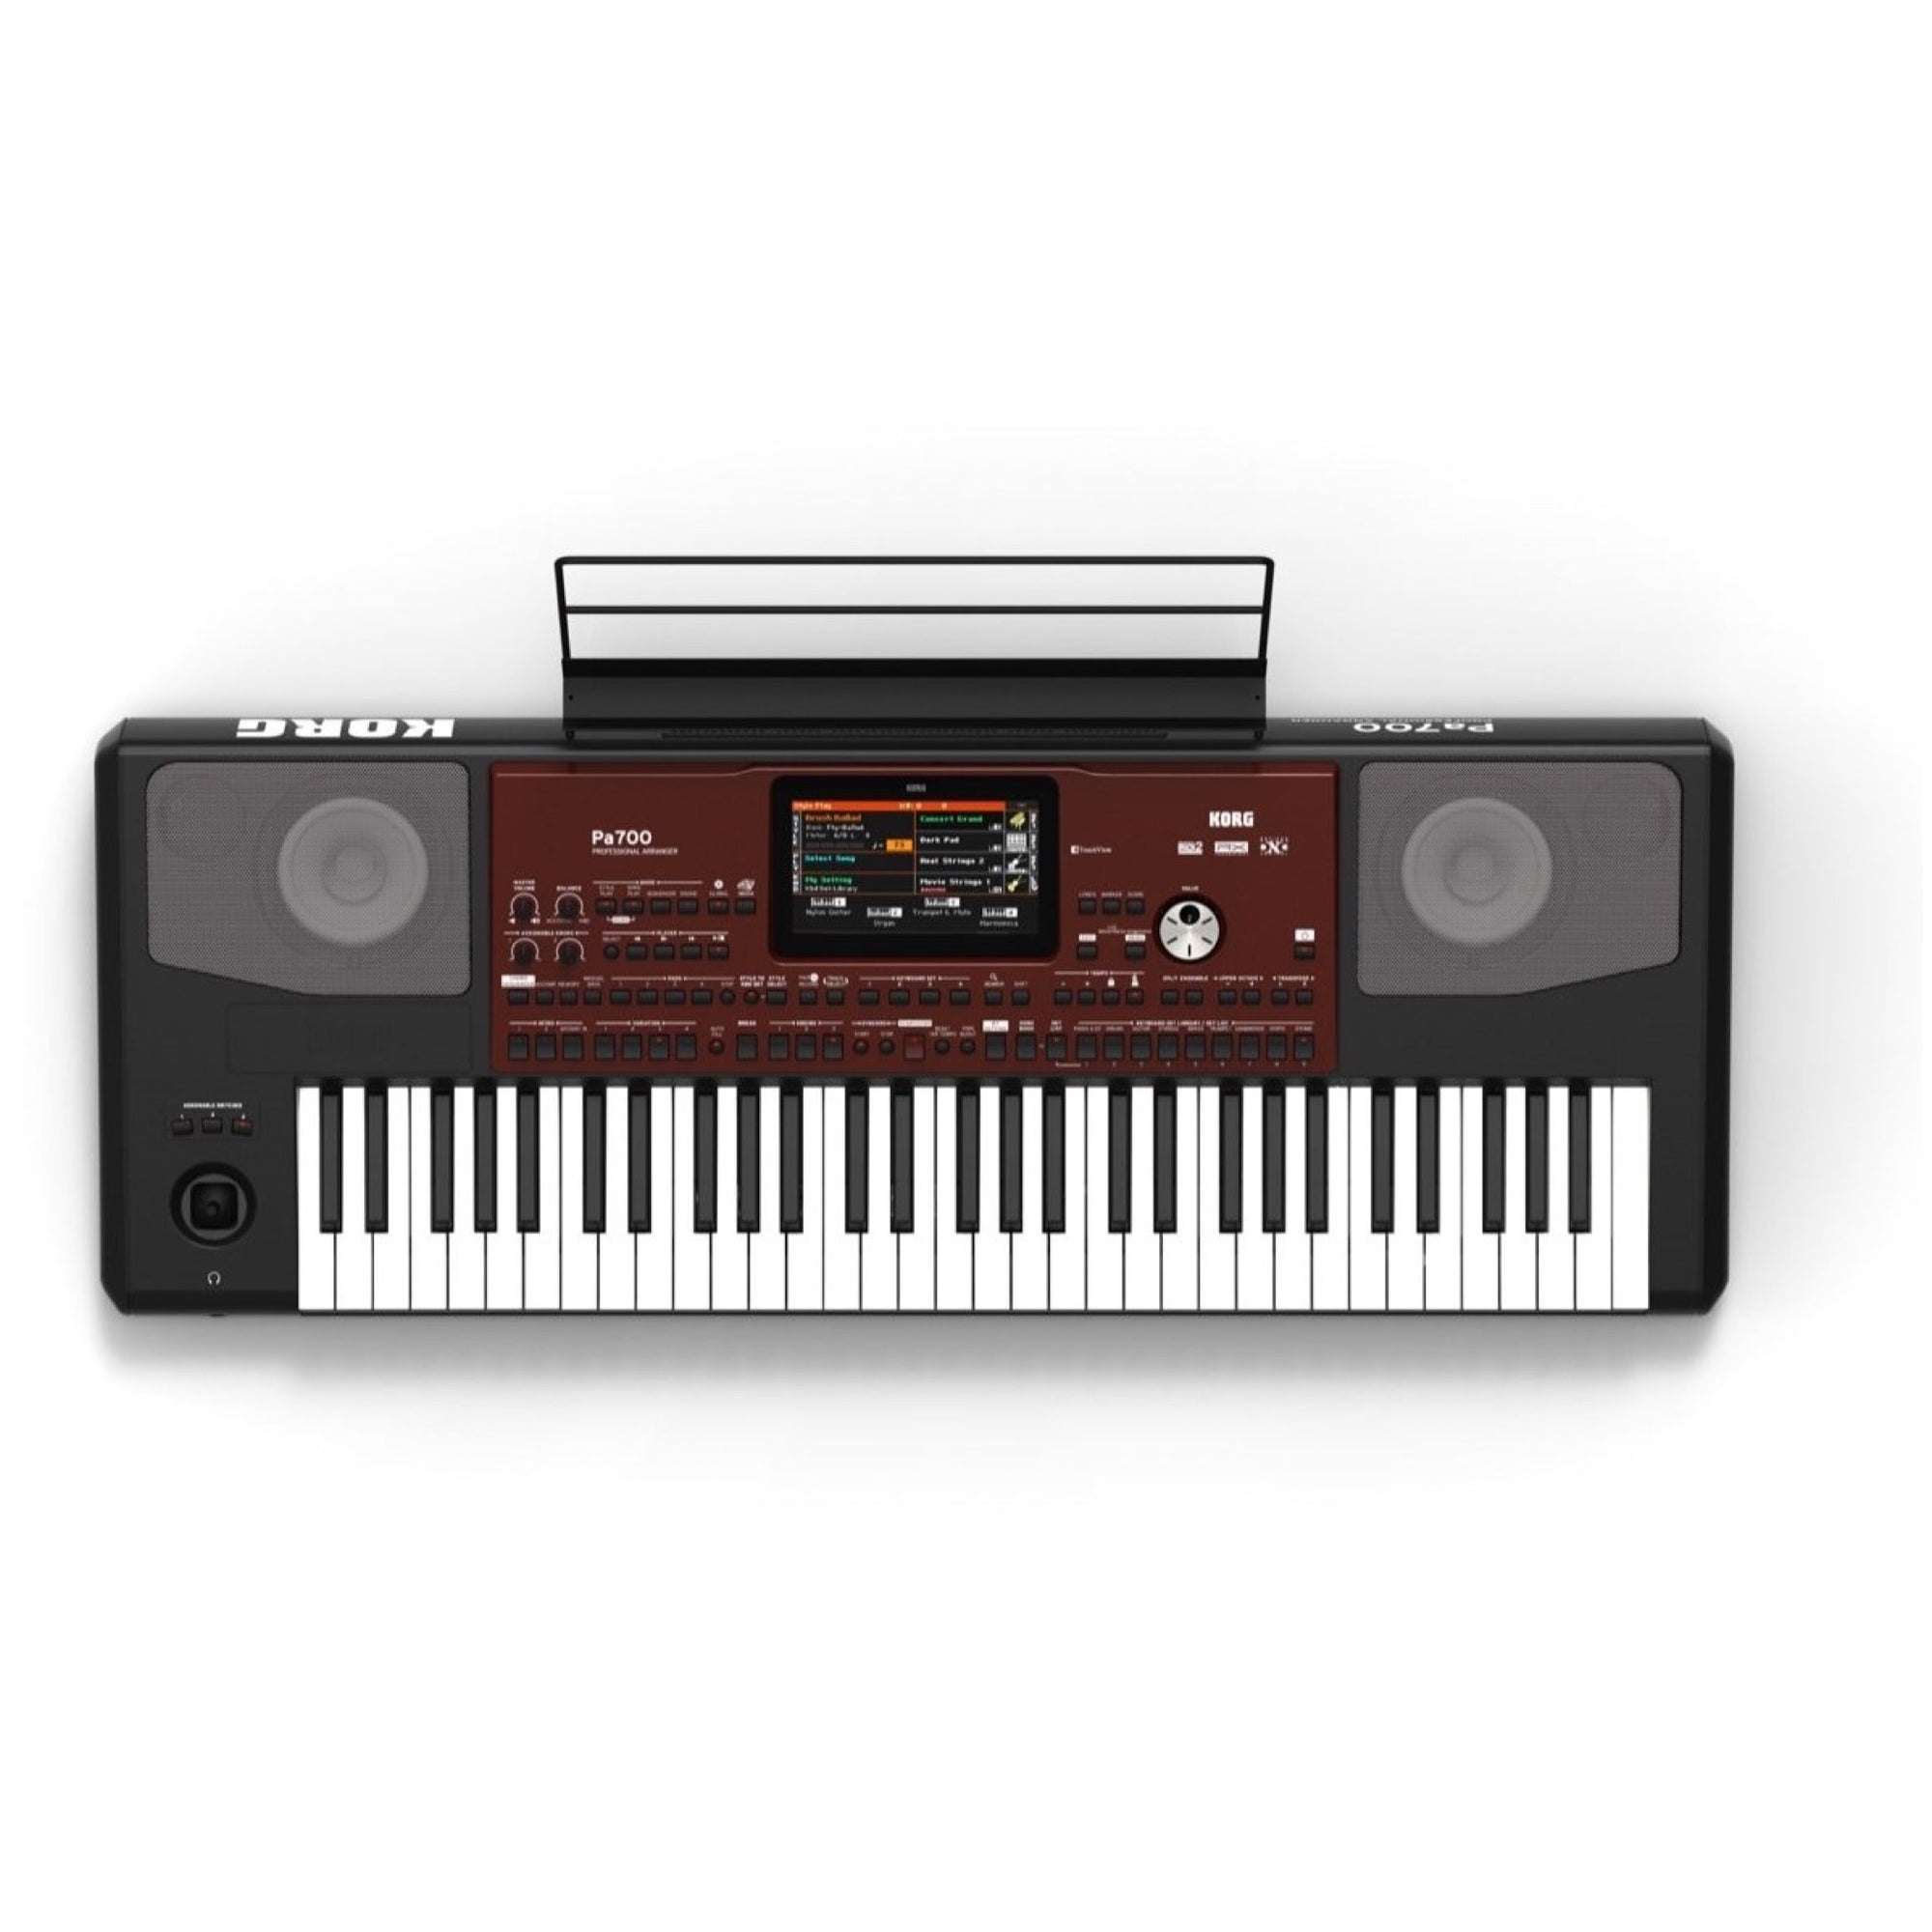 Korg Pa700 Arranger Workstation Keyboard, 61-Key